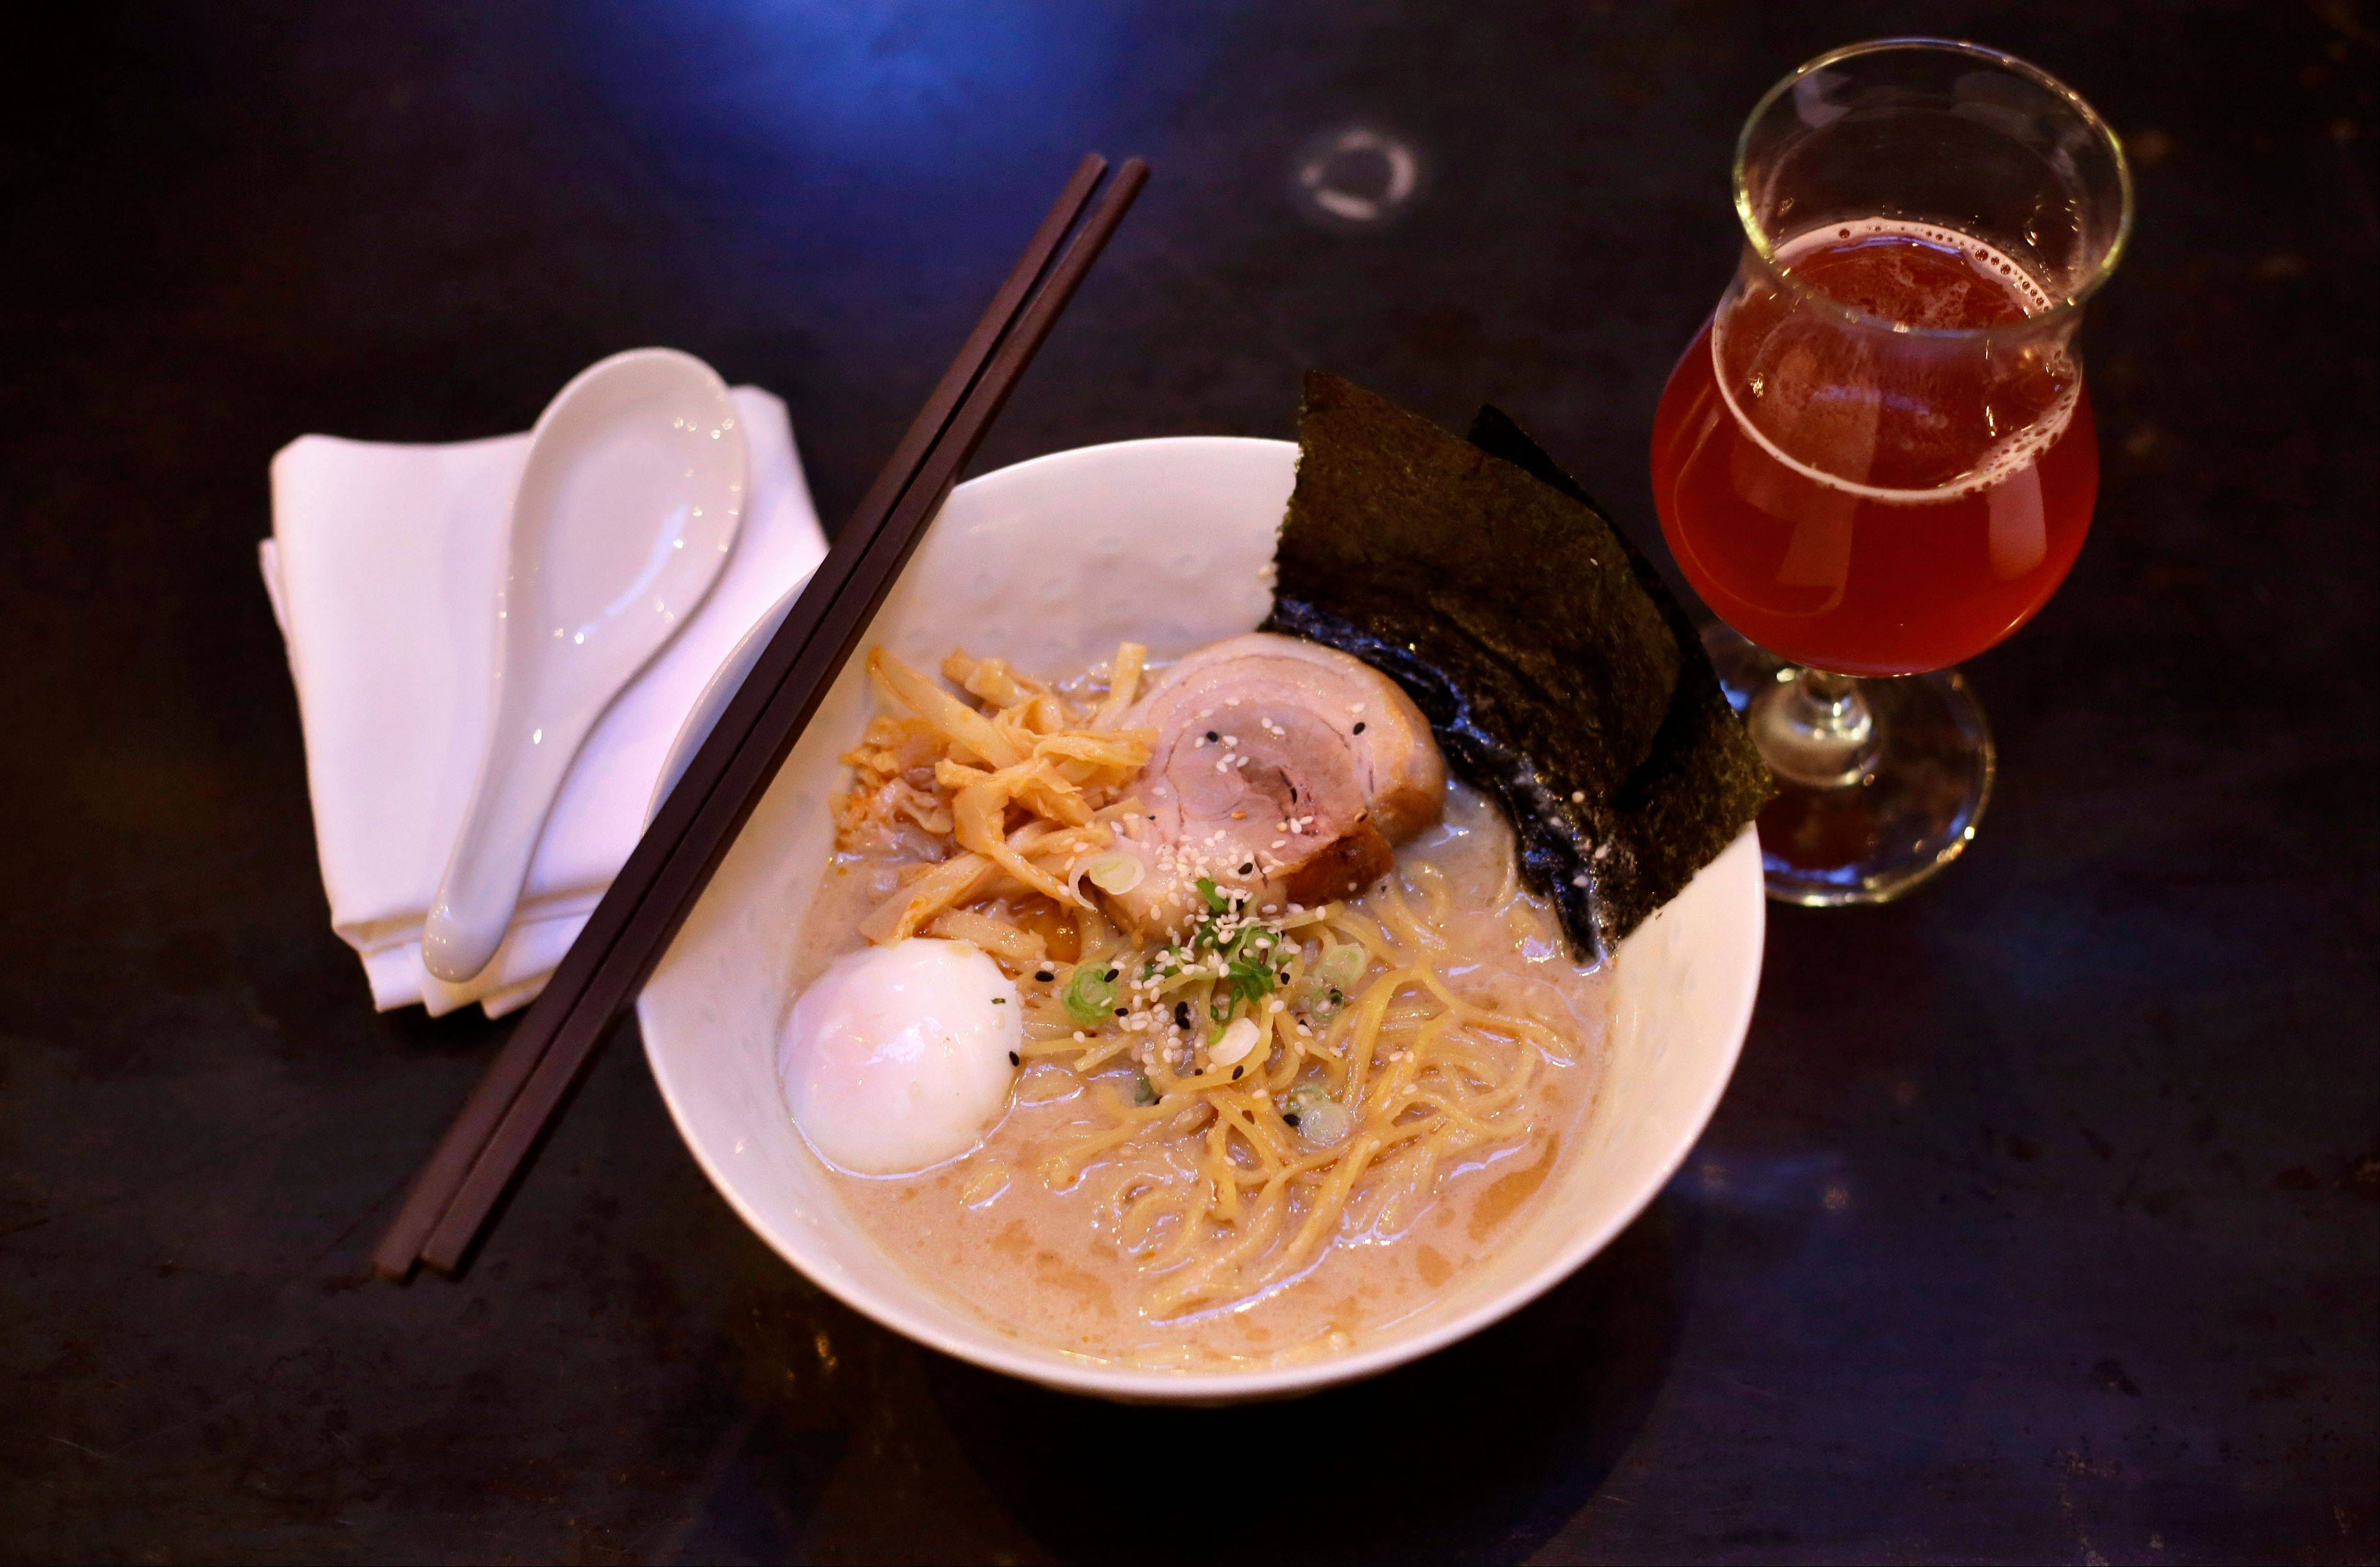 Patrons come to backbar to grab a bowl of ramen noodles and a glass of beer at backbar in Somerville, Mass.